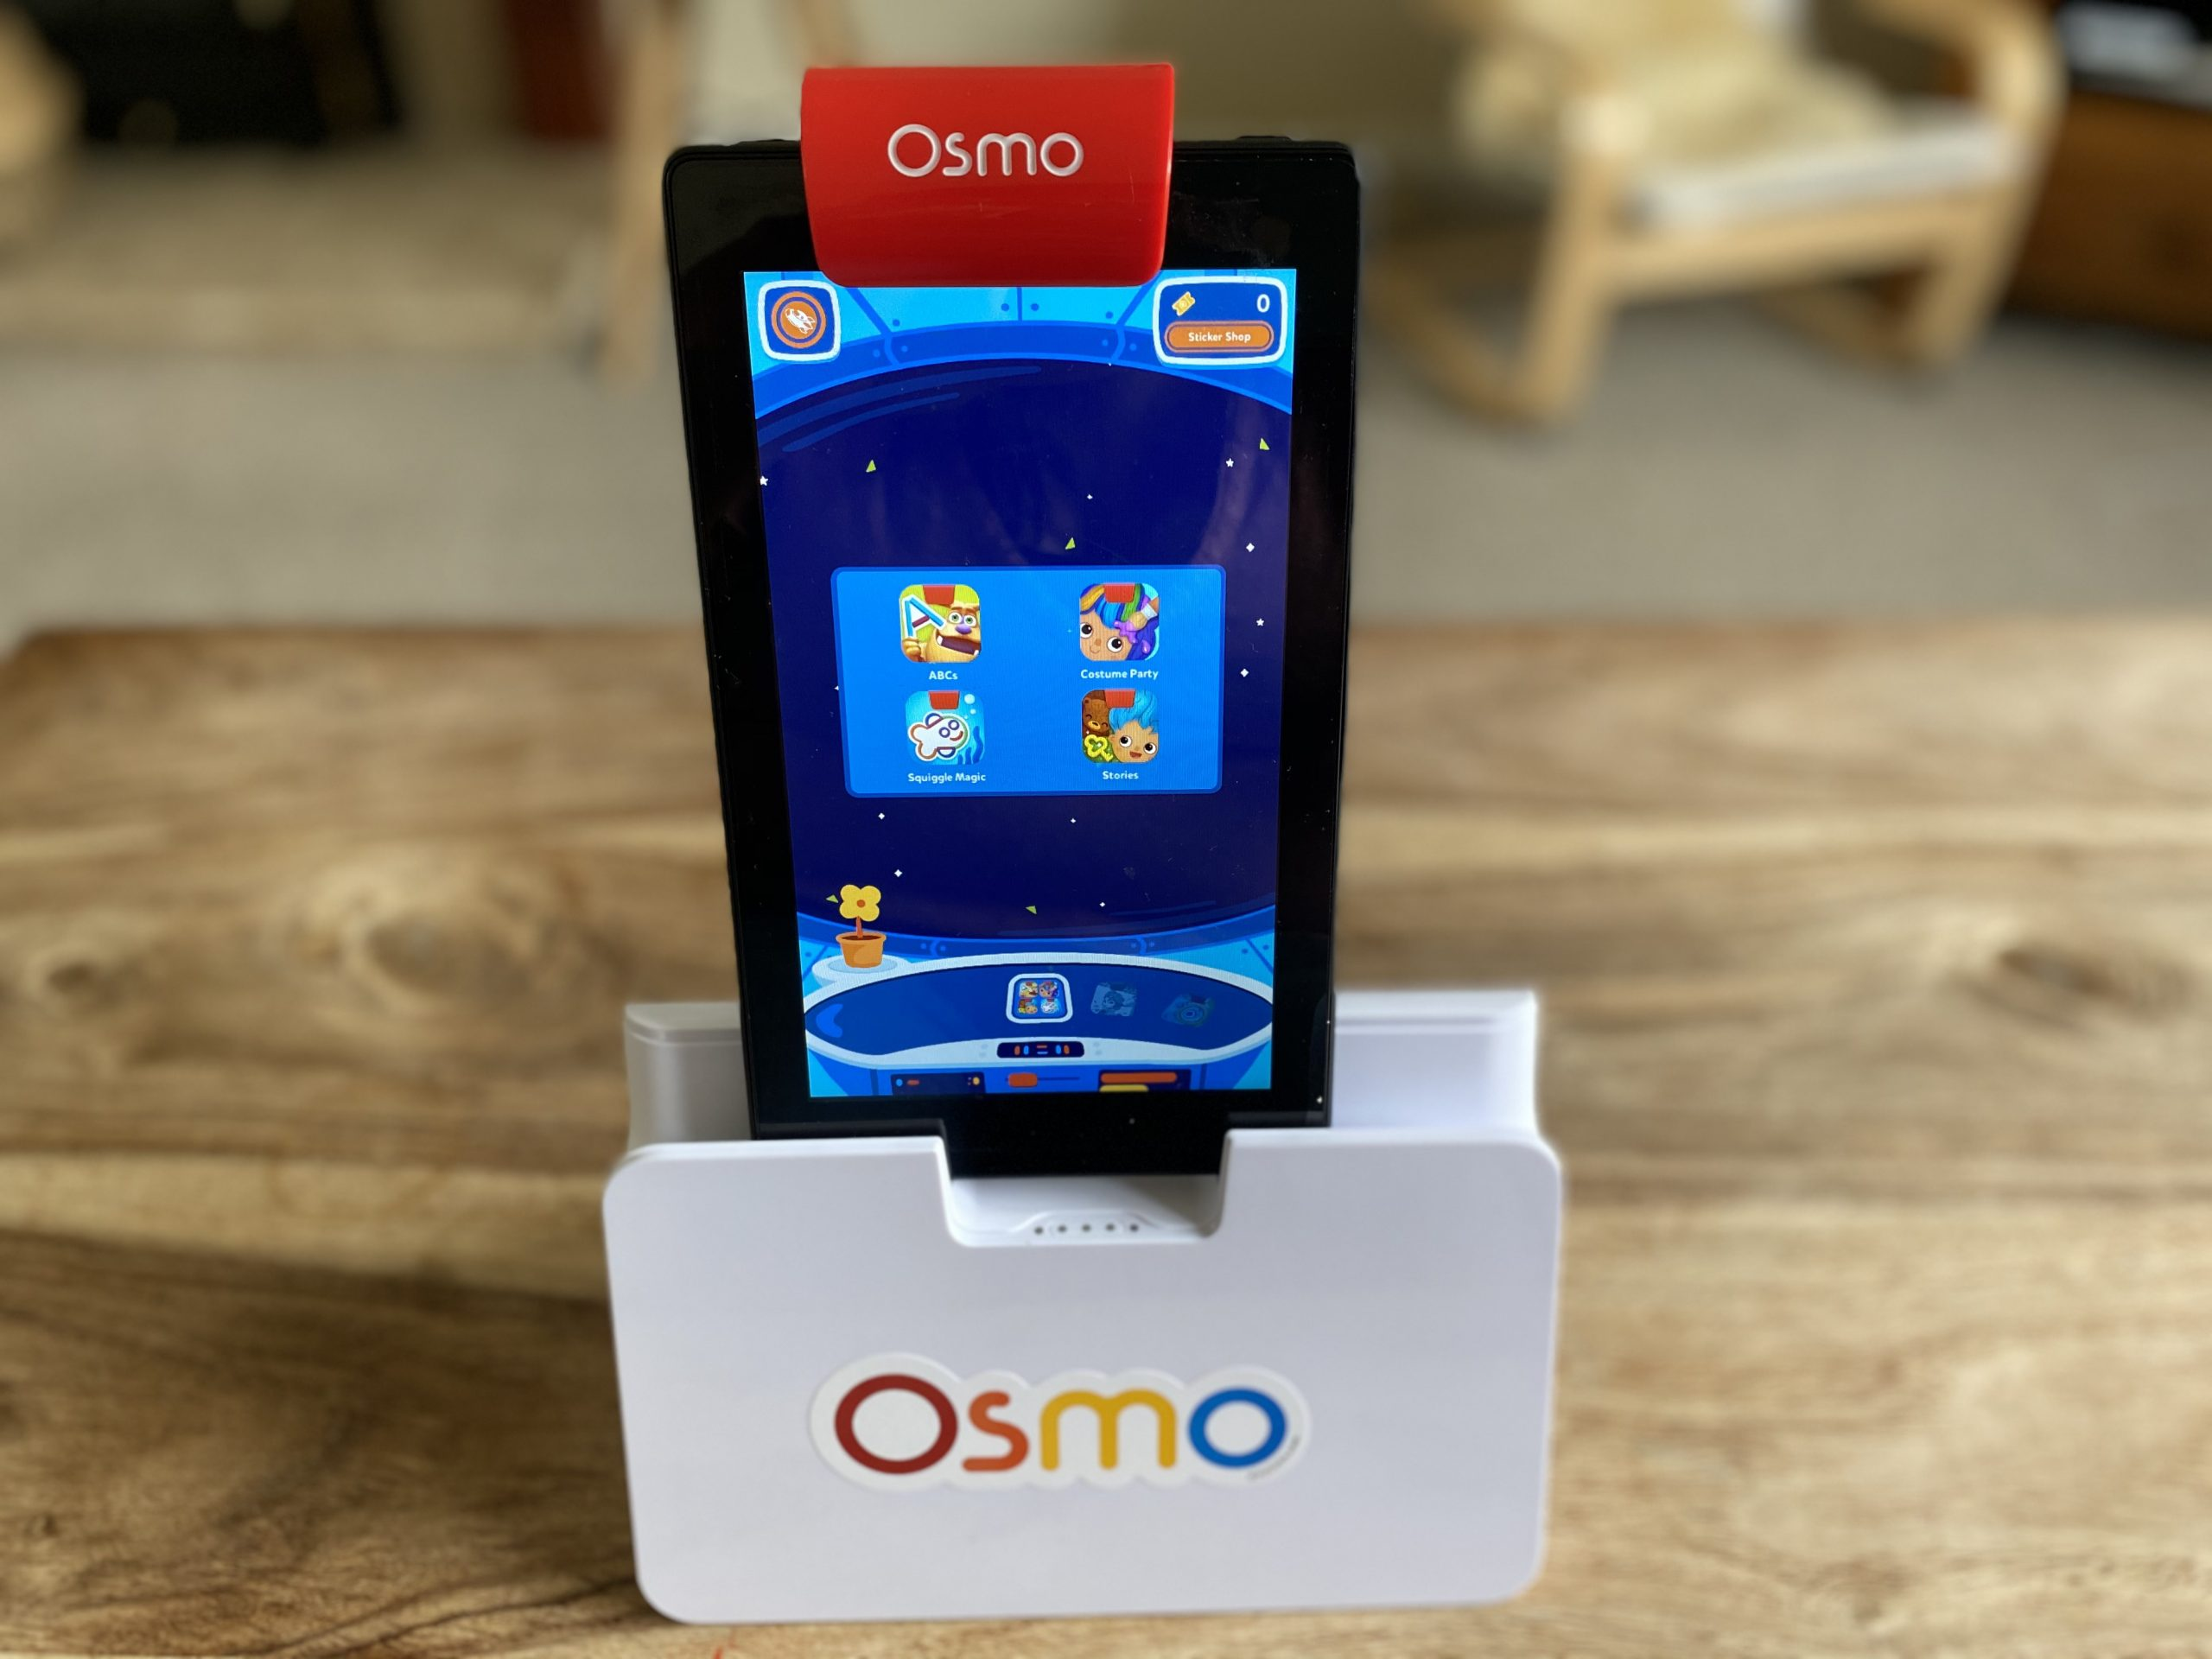 Osmo device on a table